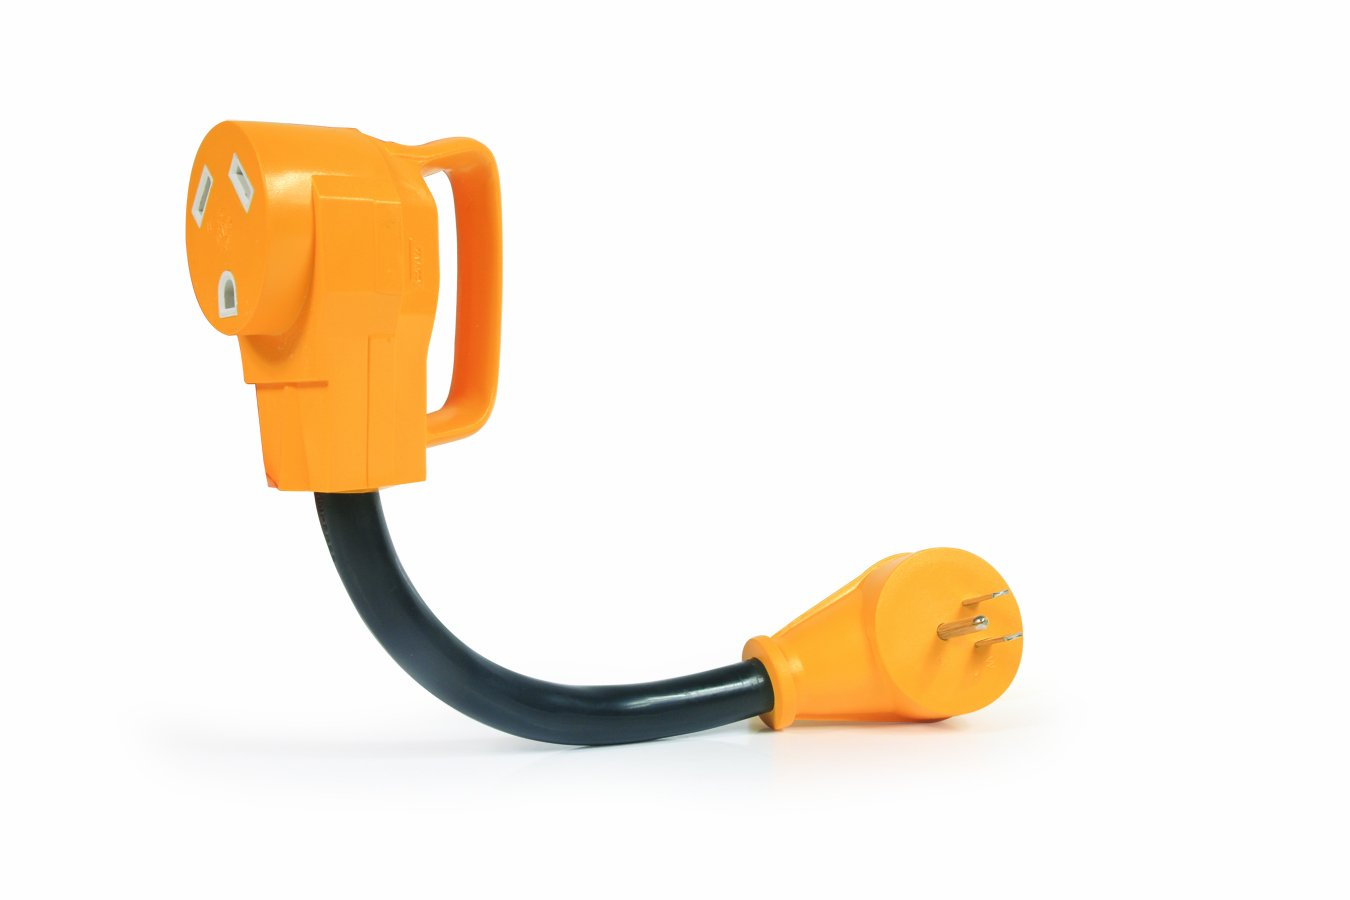 Camco Heavy Duty RV Dogbone Electrical Adapter with Innovative 180 Degree Bend Design and Easy PowerGrip Handle - 15 Amp Male to 30 Amp Female, 12'' (55165)